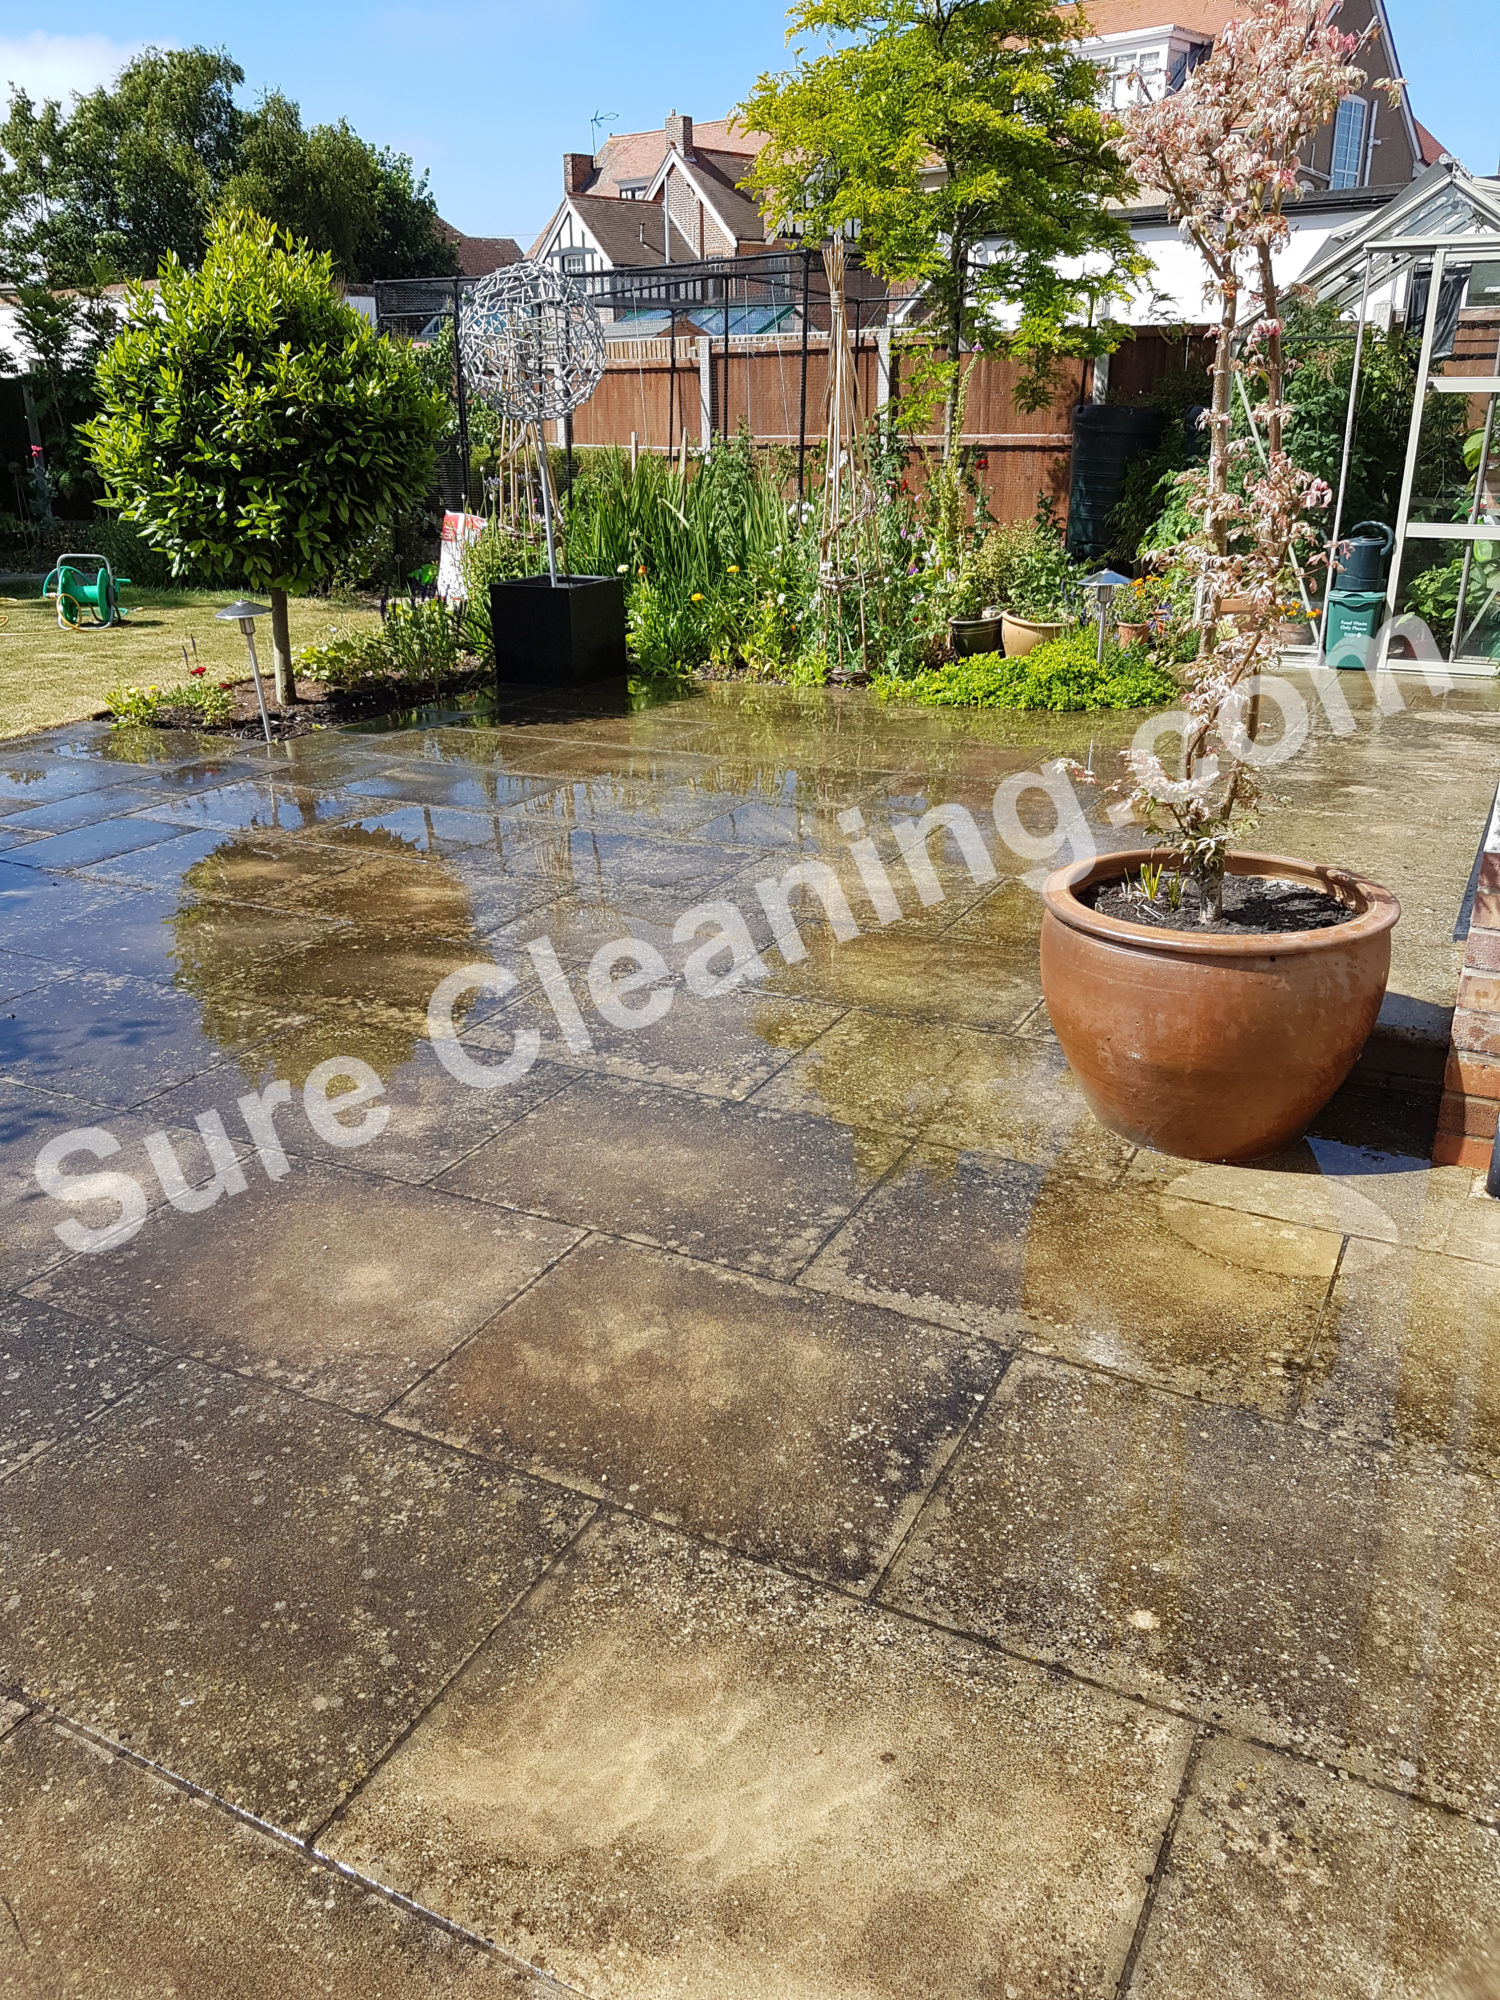 Pressure Cleaning Jet Washing Sure Cleaning Clacton